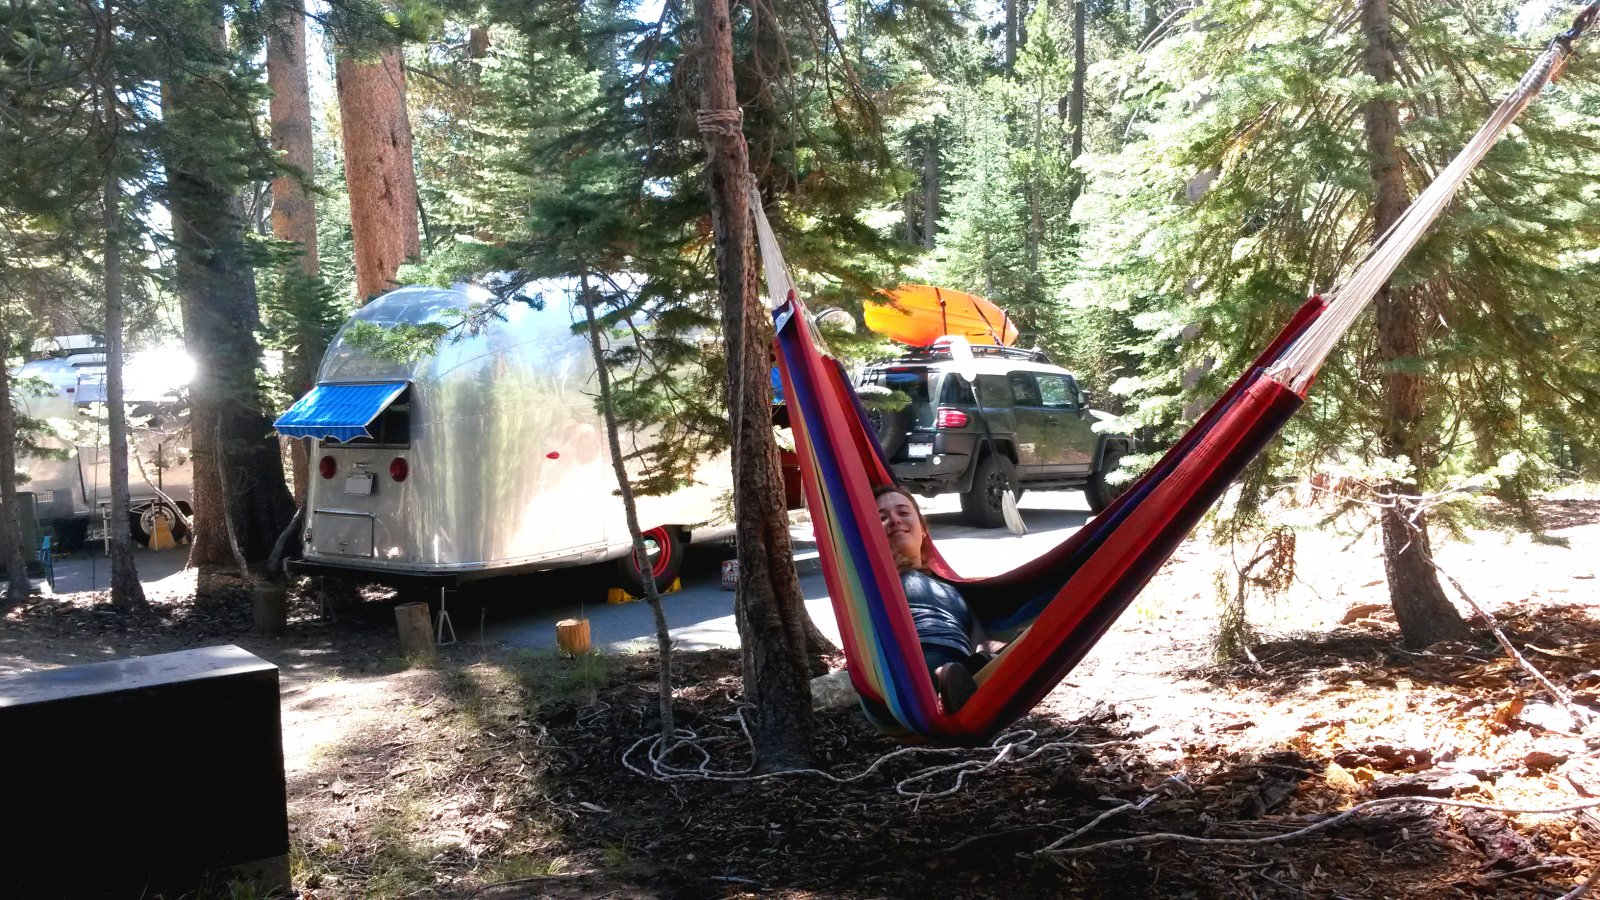 Click image for larger version  Name:Airstream Courtright 01.jpg Views:103 Size:484.2 KB ID:194217